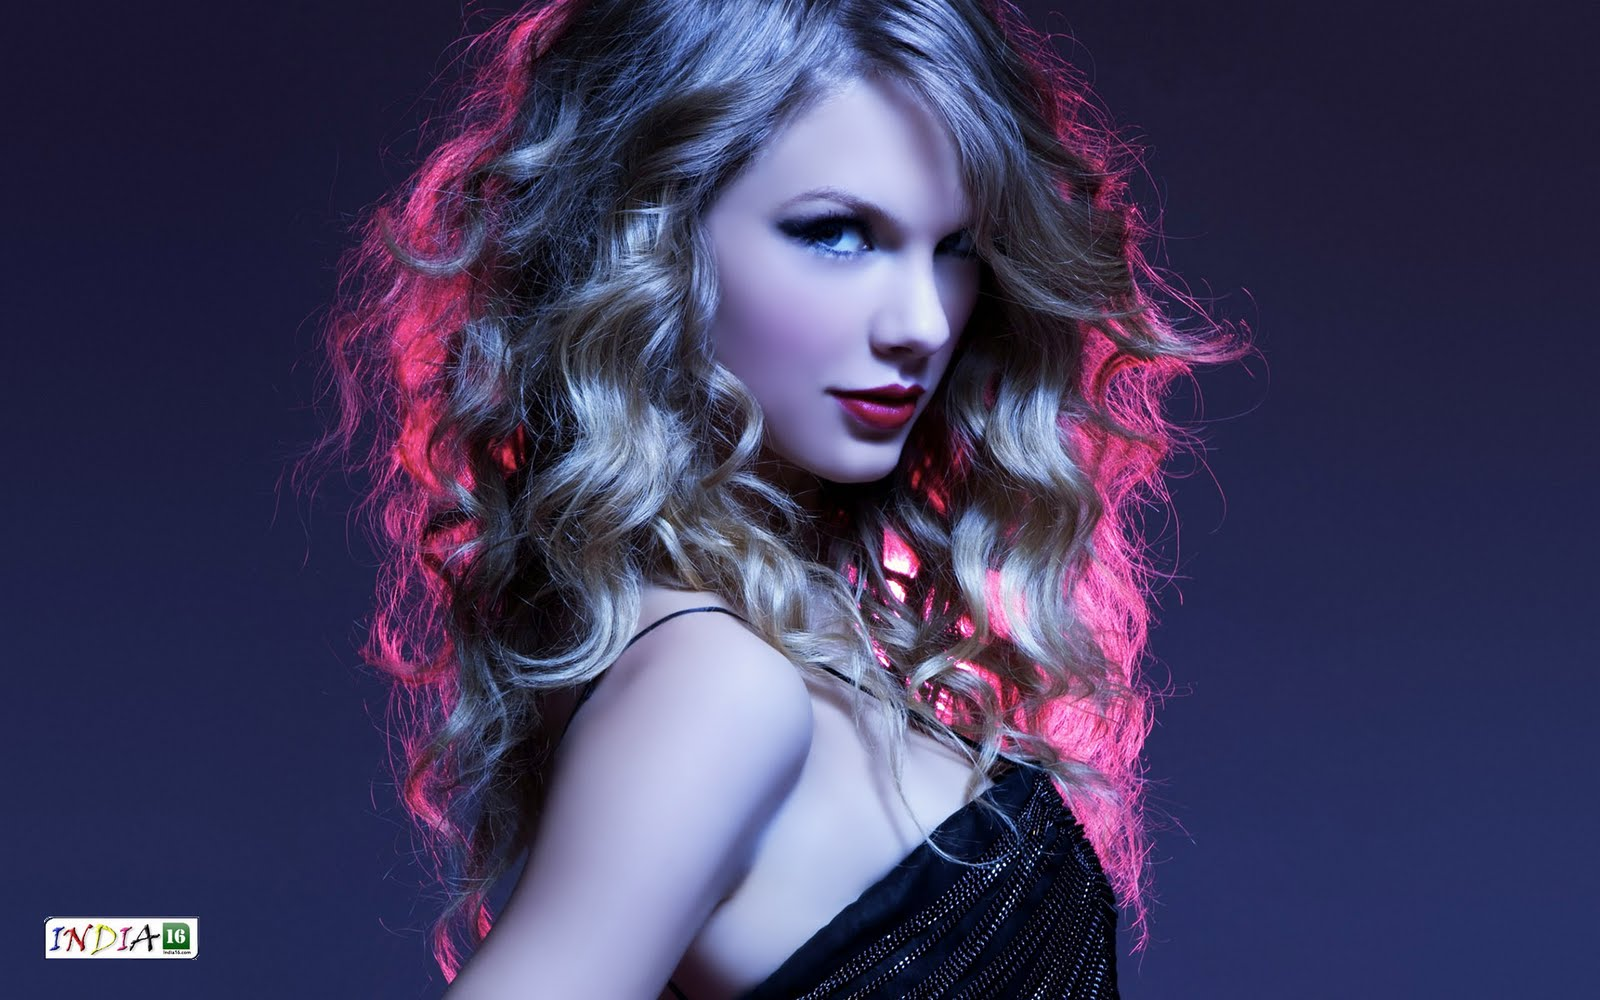 http://4.bp.blogspot.com/-GOlWNJ8wz3o/Tjar9wBYdGI/AAAAAAAAJio/tXF7OTKU40Y/s1600/taylor+swift+hot+wallpapers.jpg